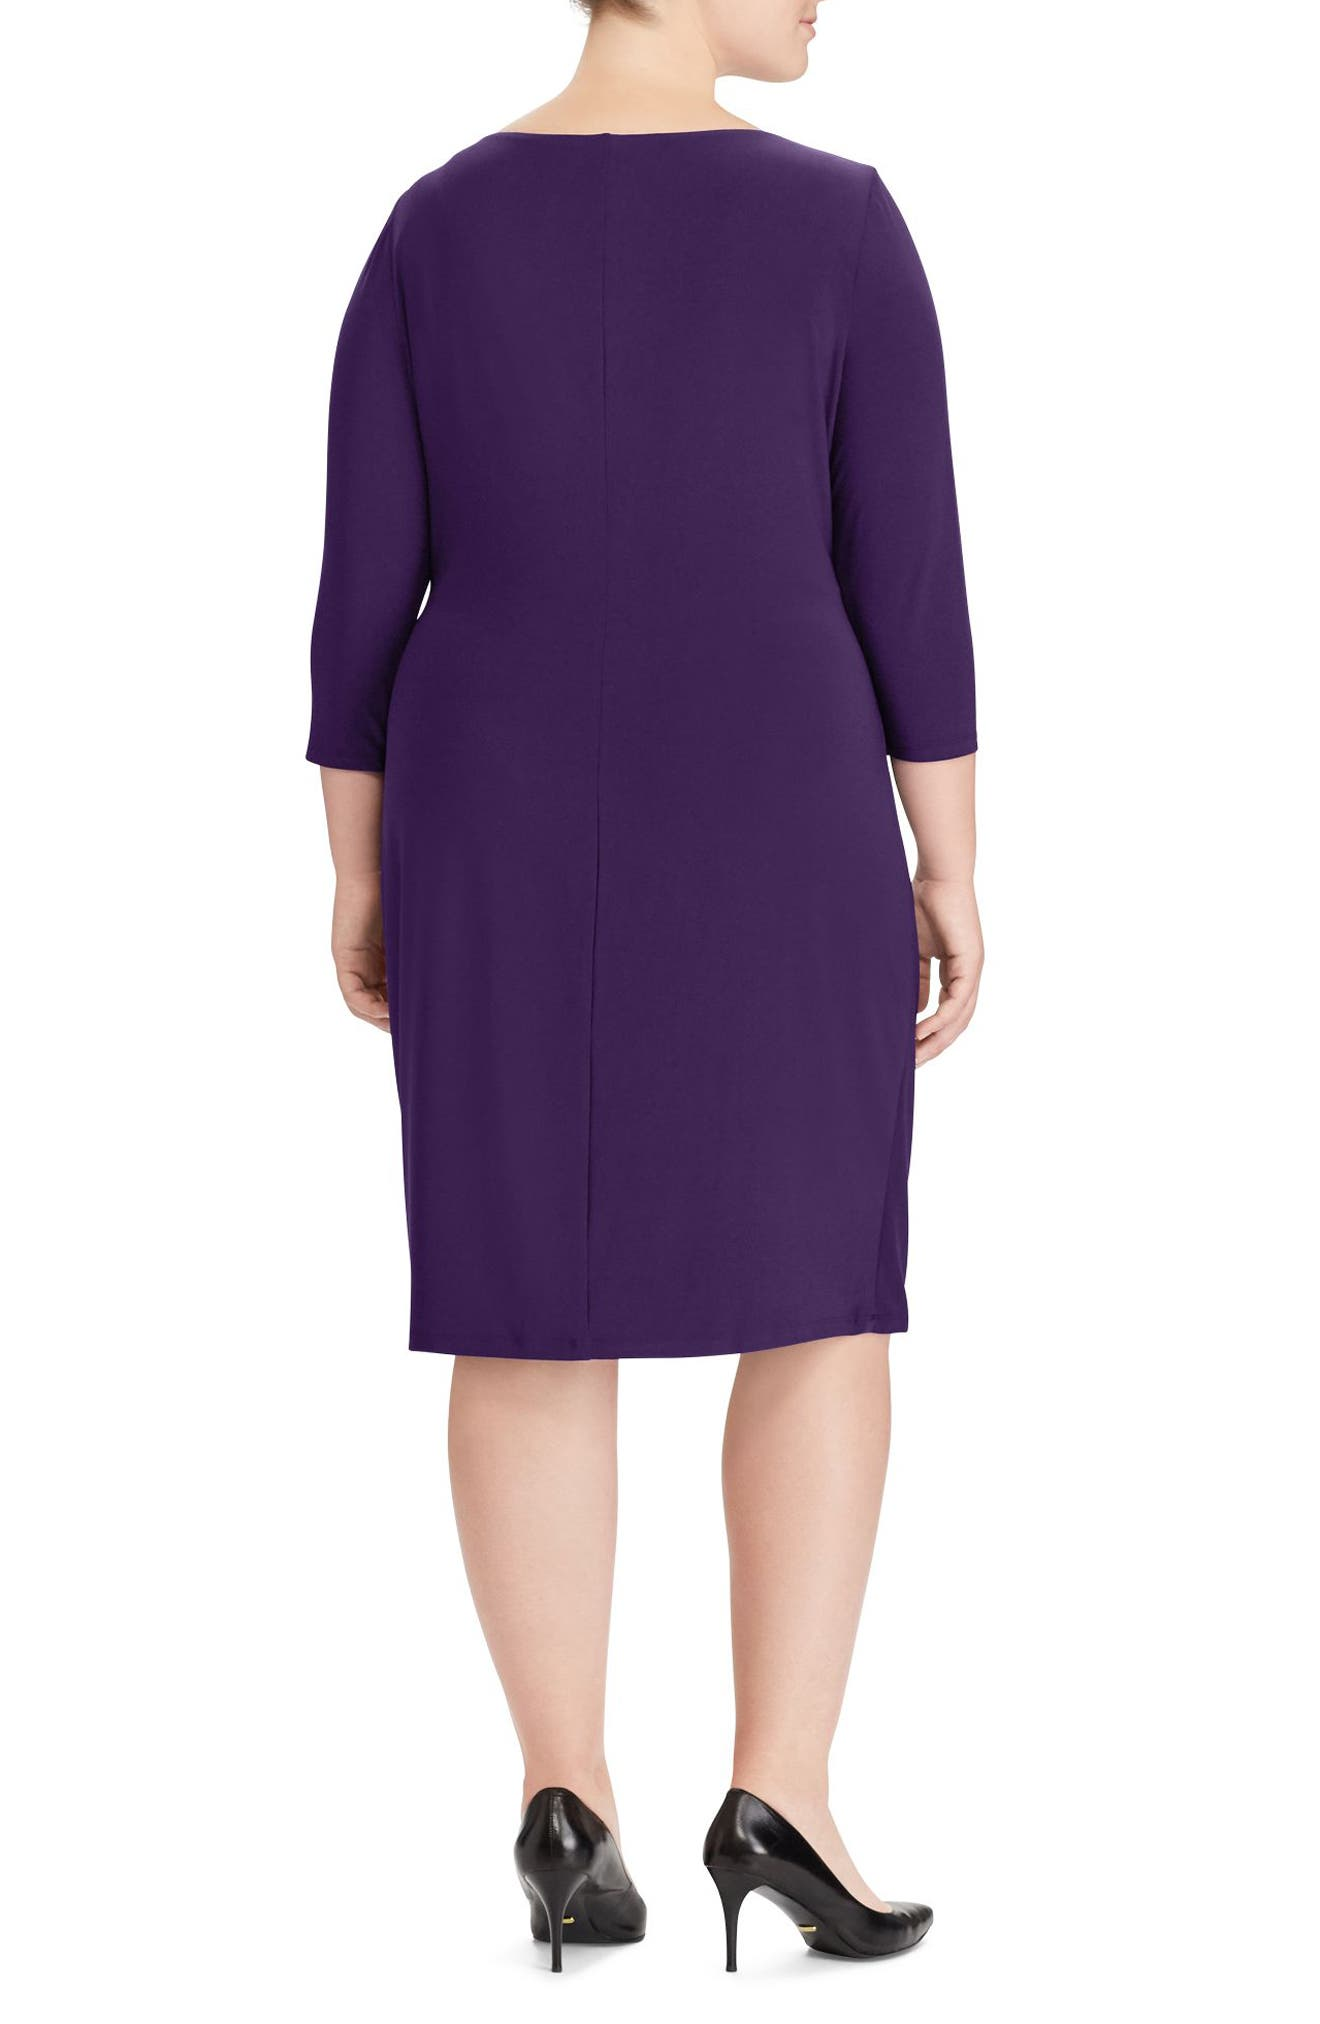 Ruched Jersey Dress,                             Alternate thumbnail 2, color,                             500